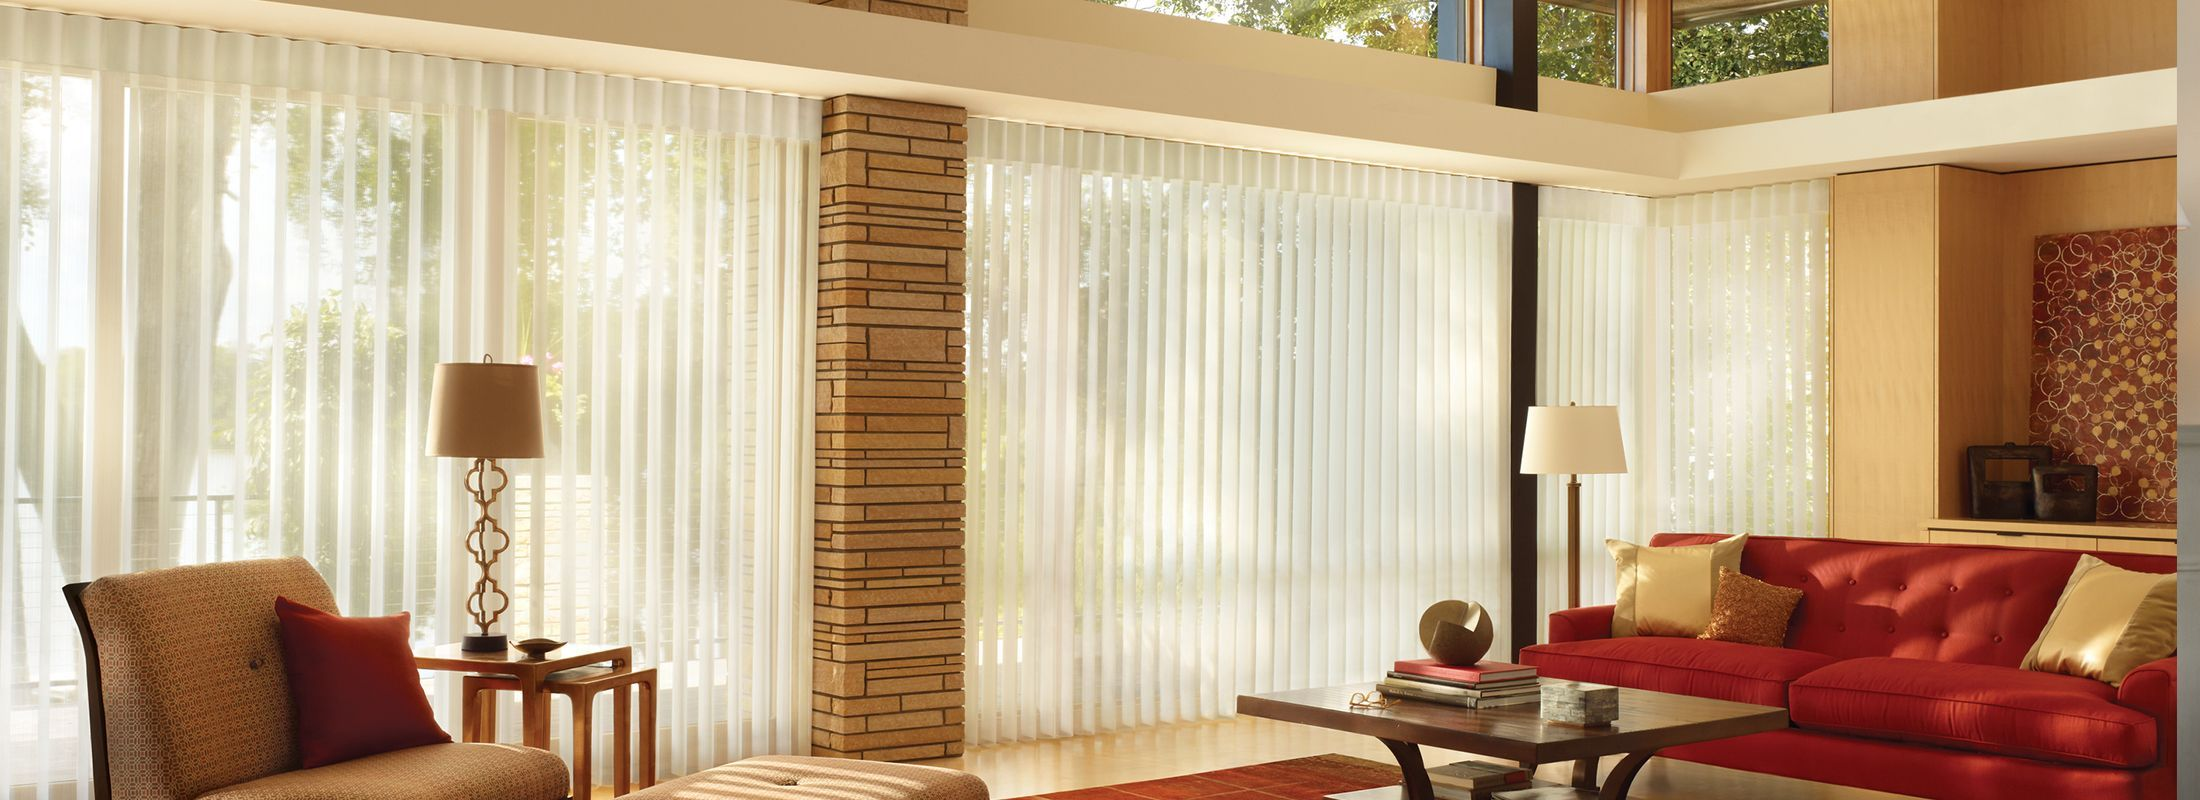 Privacy Blinds In Stria Harmony Luminette Modern Window